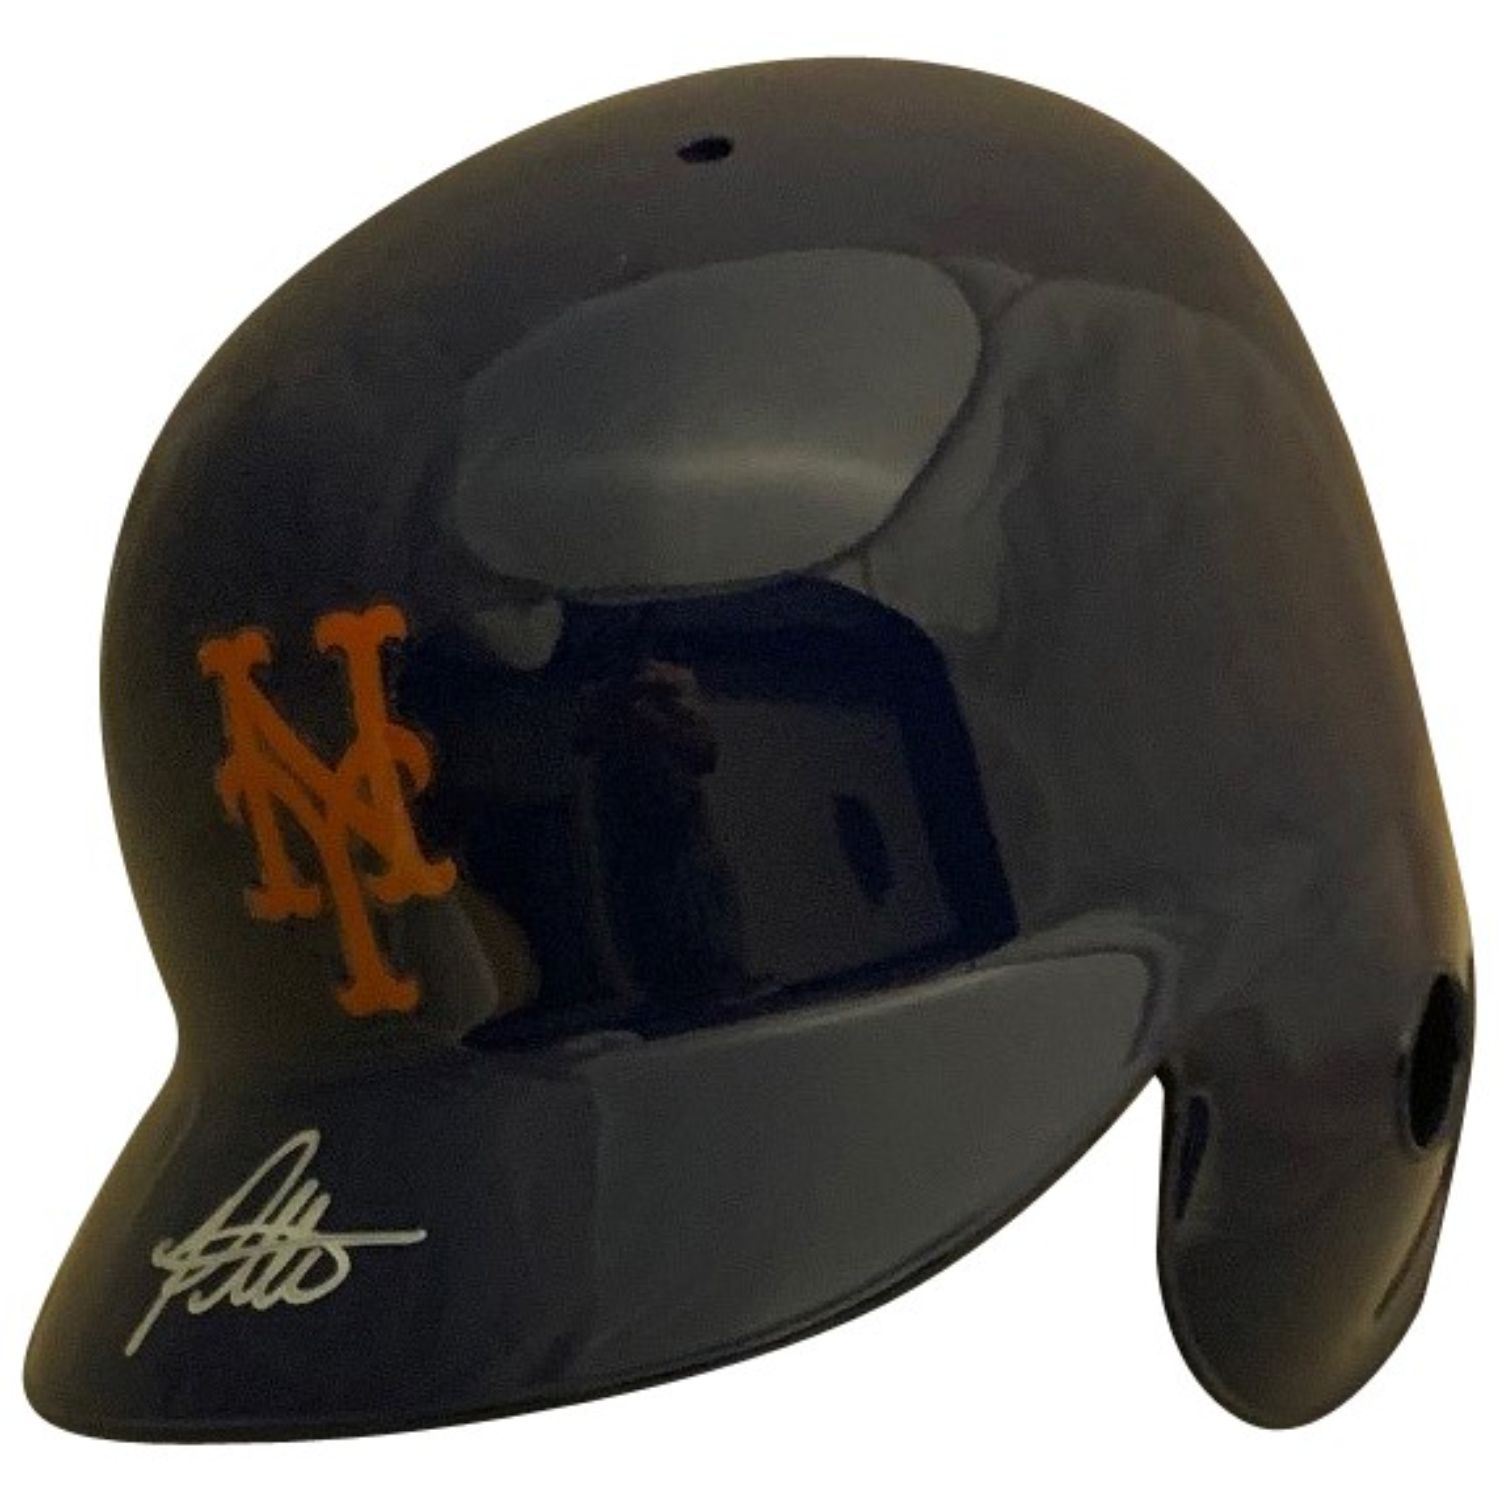 Pete Alonso Autographed New York Mets Signed Baseball Full Size Batting Helmet PSA DNA COA